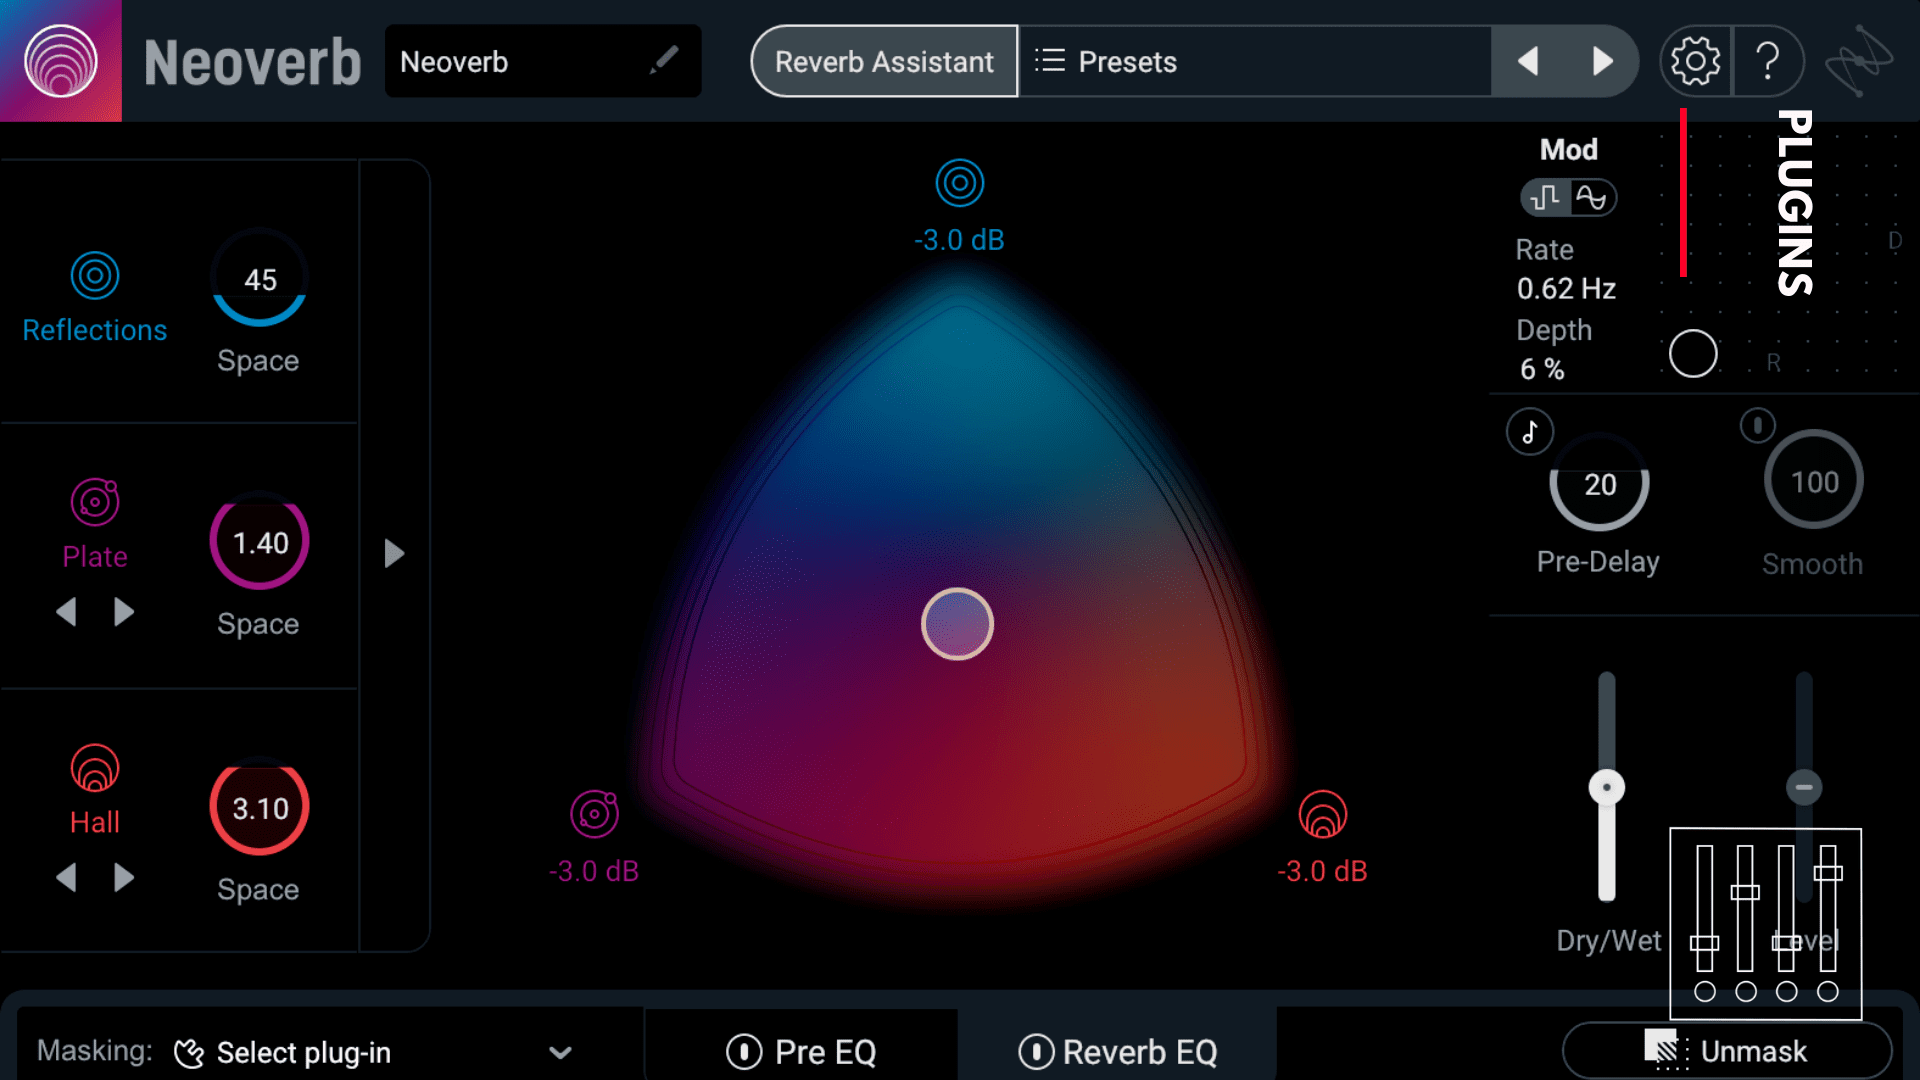 iZotope Neoverb reverb